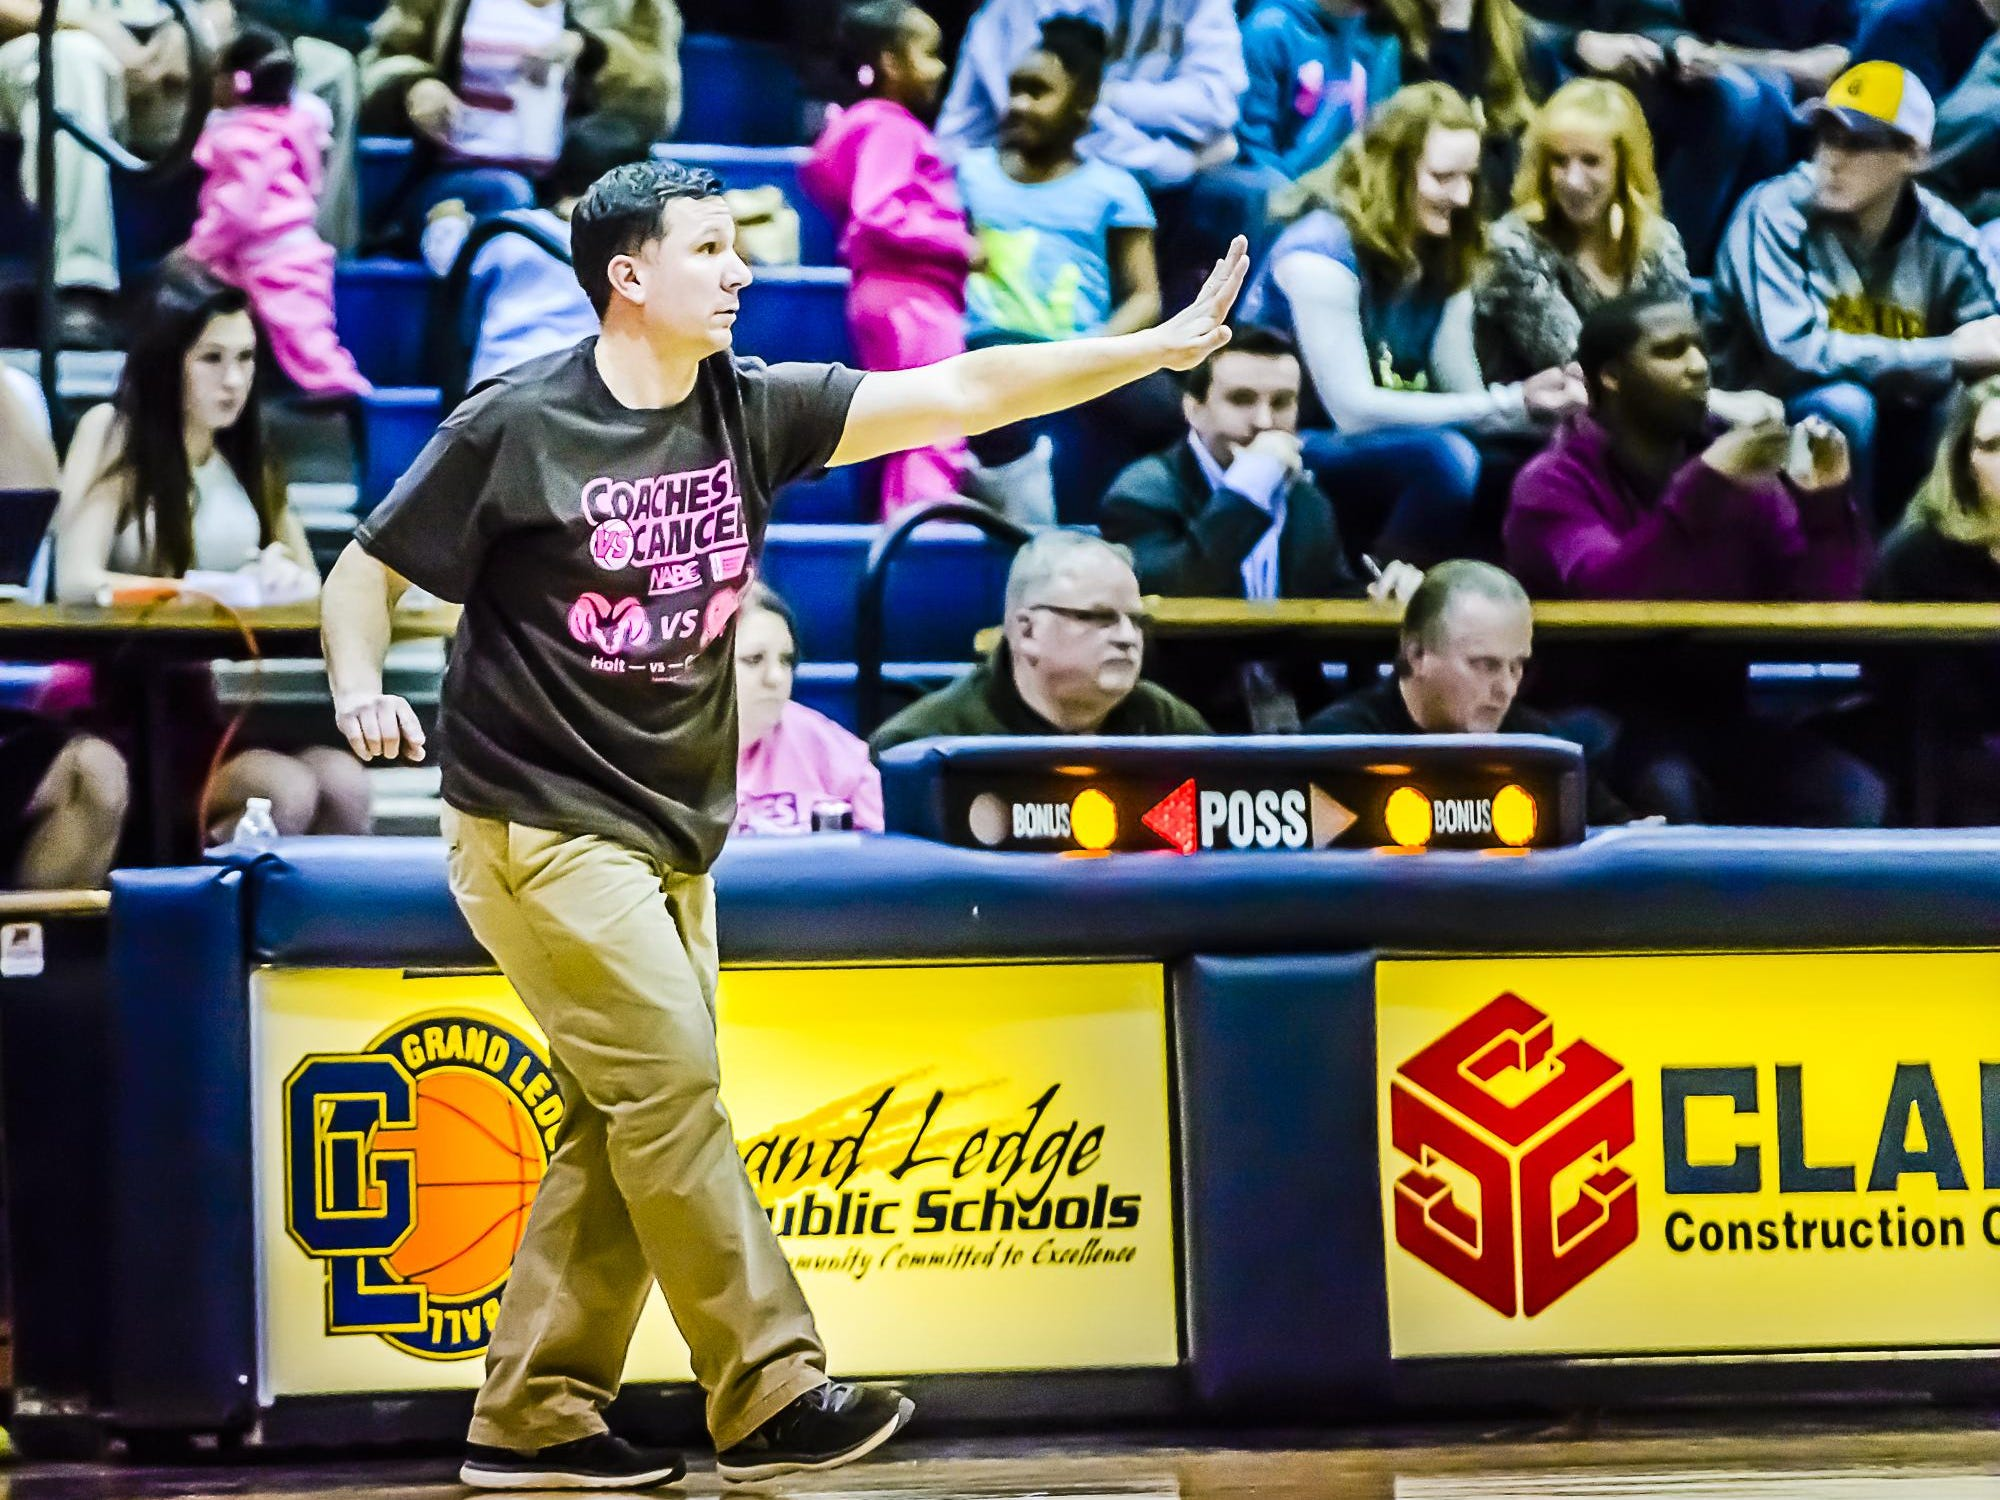 """Coach Matt Essell and Holt combined with rival Grand Ledge for a """"Coaches vs. Cancer"""" basketball game last winter with funds going to the American Cancer Society."""